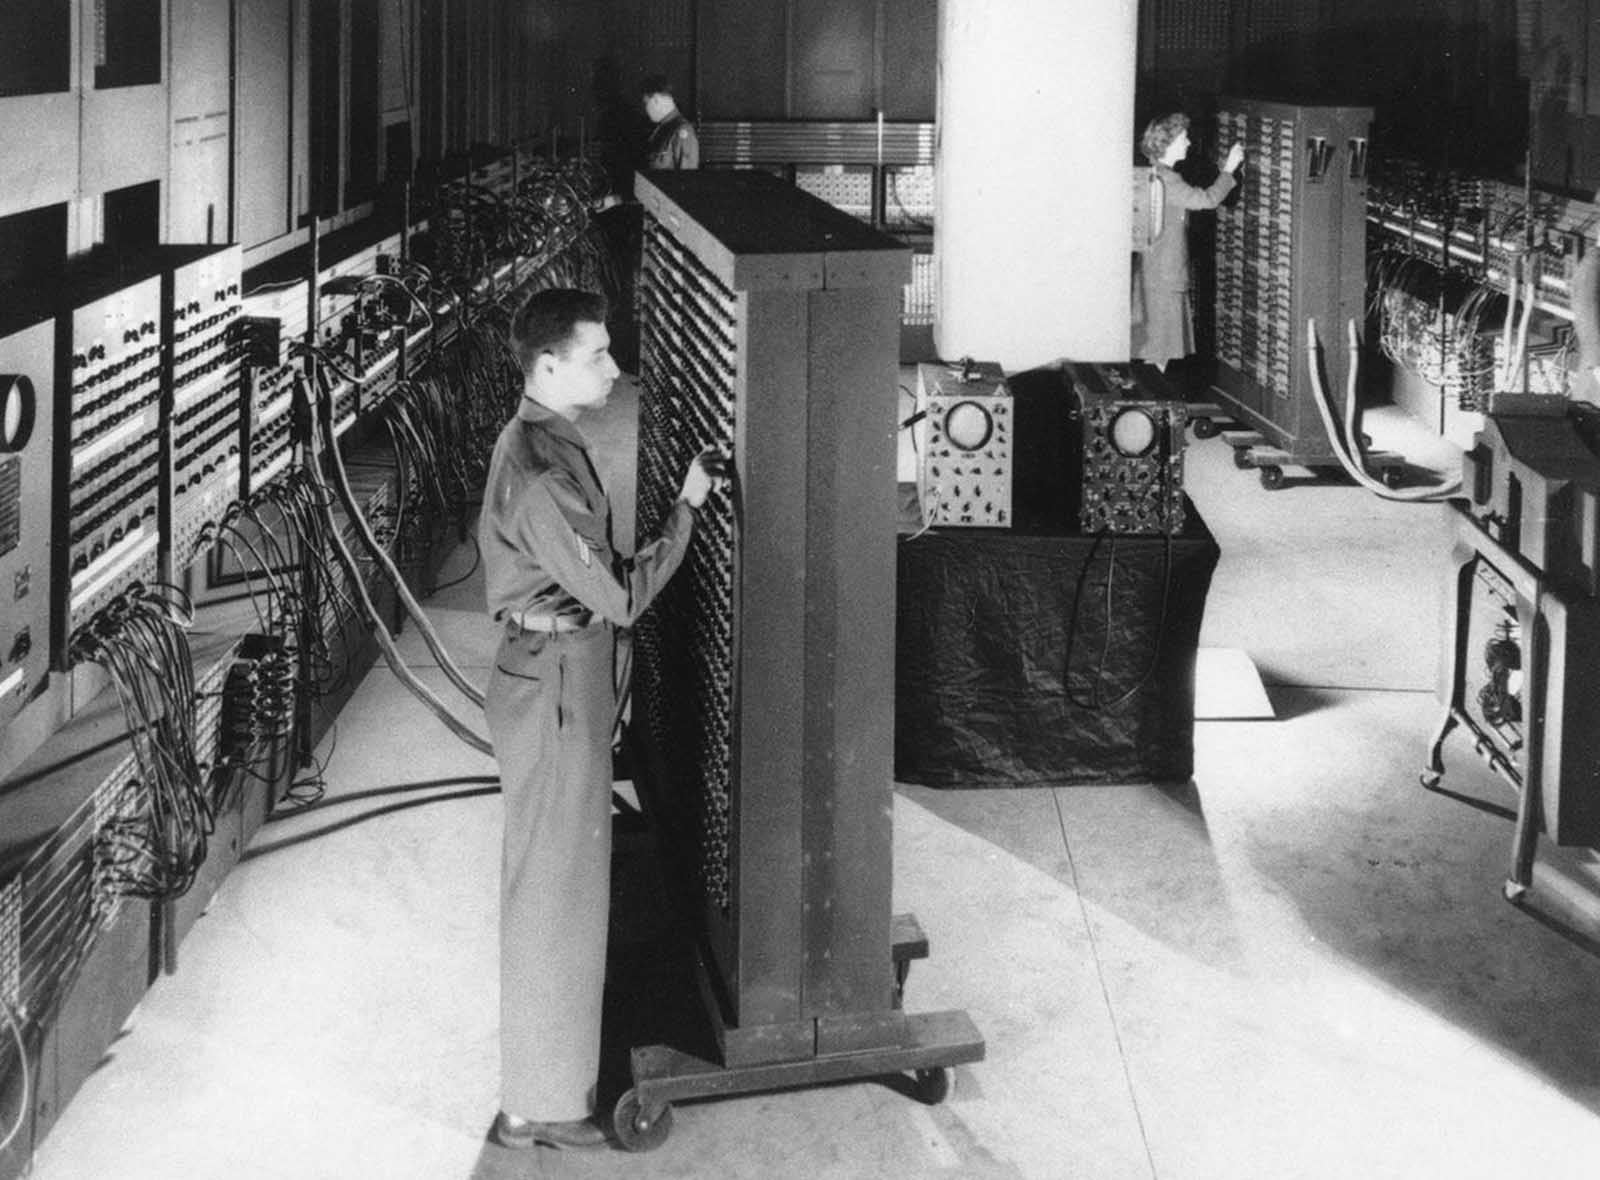 This 1946 photograph shows ENIAC (Electronic Numerical Integrator And Computer), the first general purpose electronic computer - a 30-ton machine housed at the University of Pennsylvania. Developed in secret starting in 1943, ENIAC was designed to calculate artillery firing tables for the United States Army's Ballistic Research Laboratory. The completed machine was announced to the public on February 14, 1946. The inventors of ENIAC promoted the spread of the new technologies through a series of influential lectures on the construction of electronic digital computers at the University of Pennsylvania in 1946, known as the Moore School Lectures.